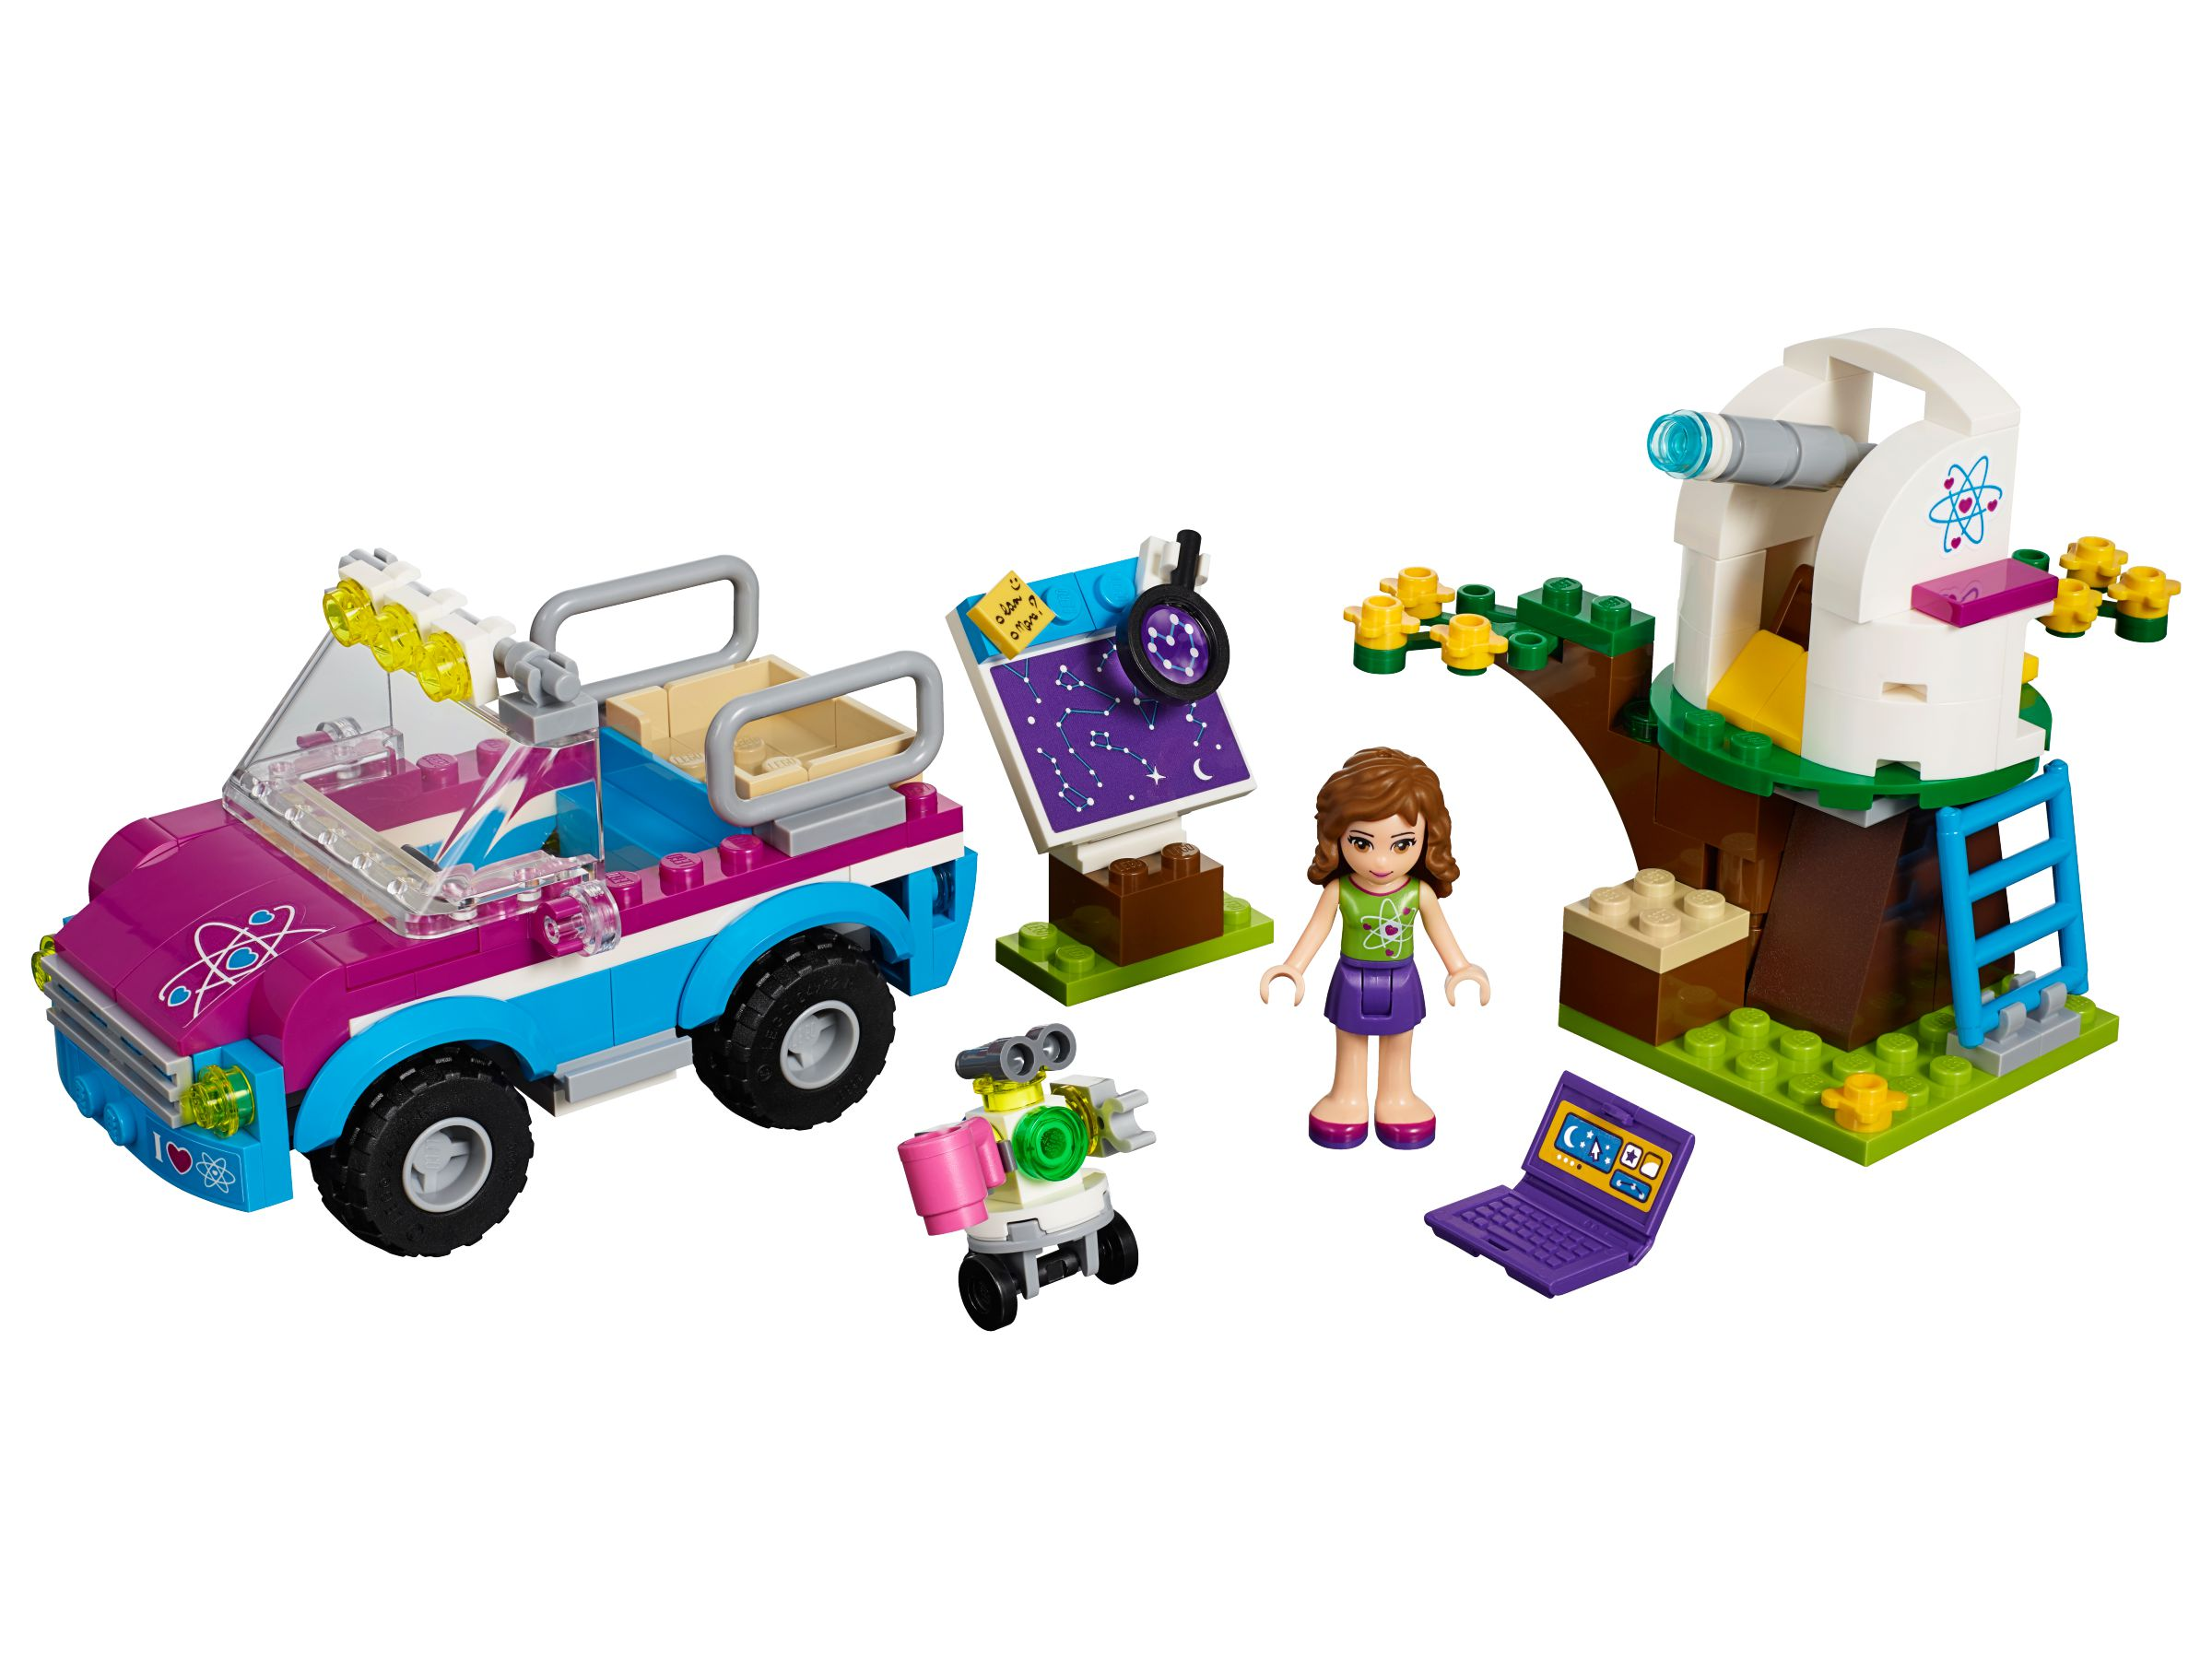 LEGO Friends 41116 Olivias Expeditionsauto LEGO_41116.jpg